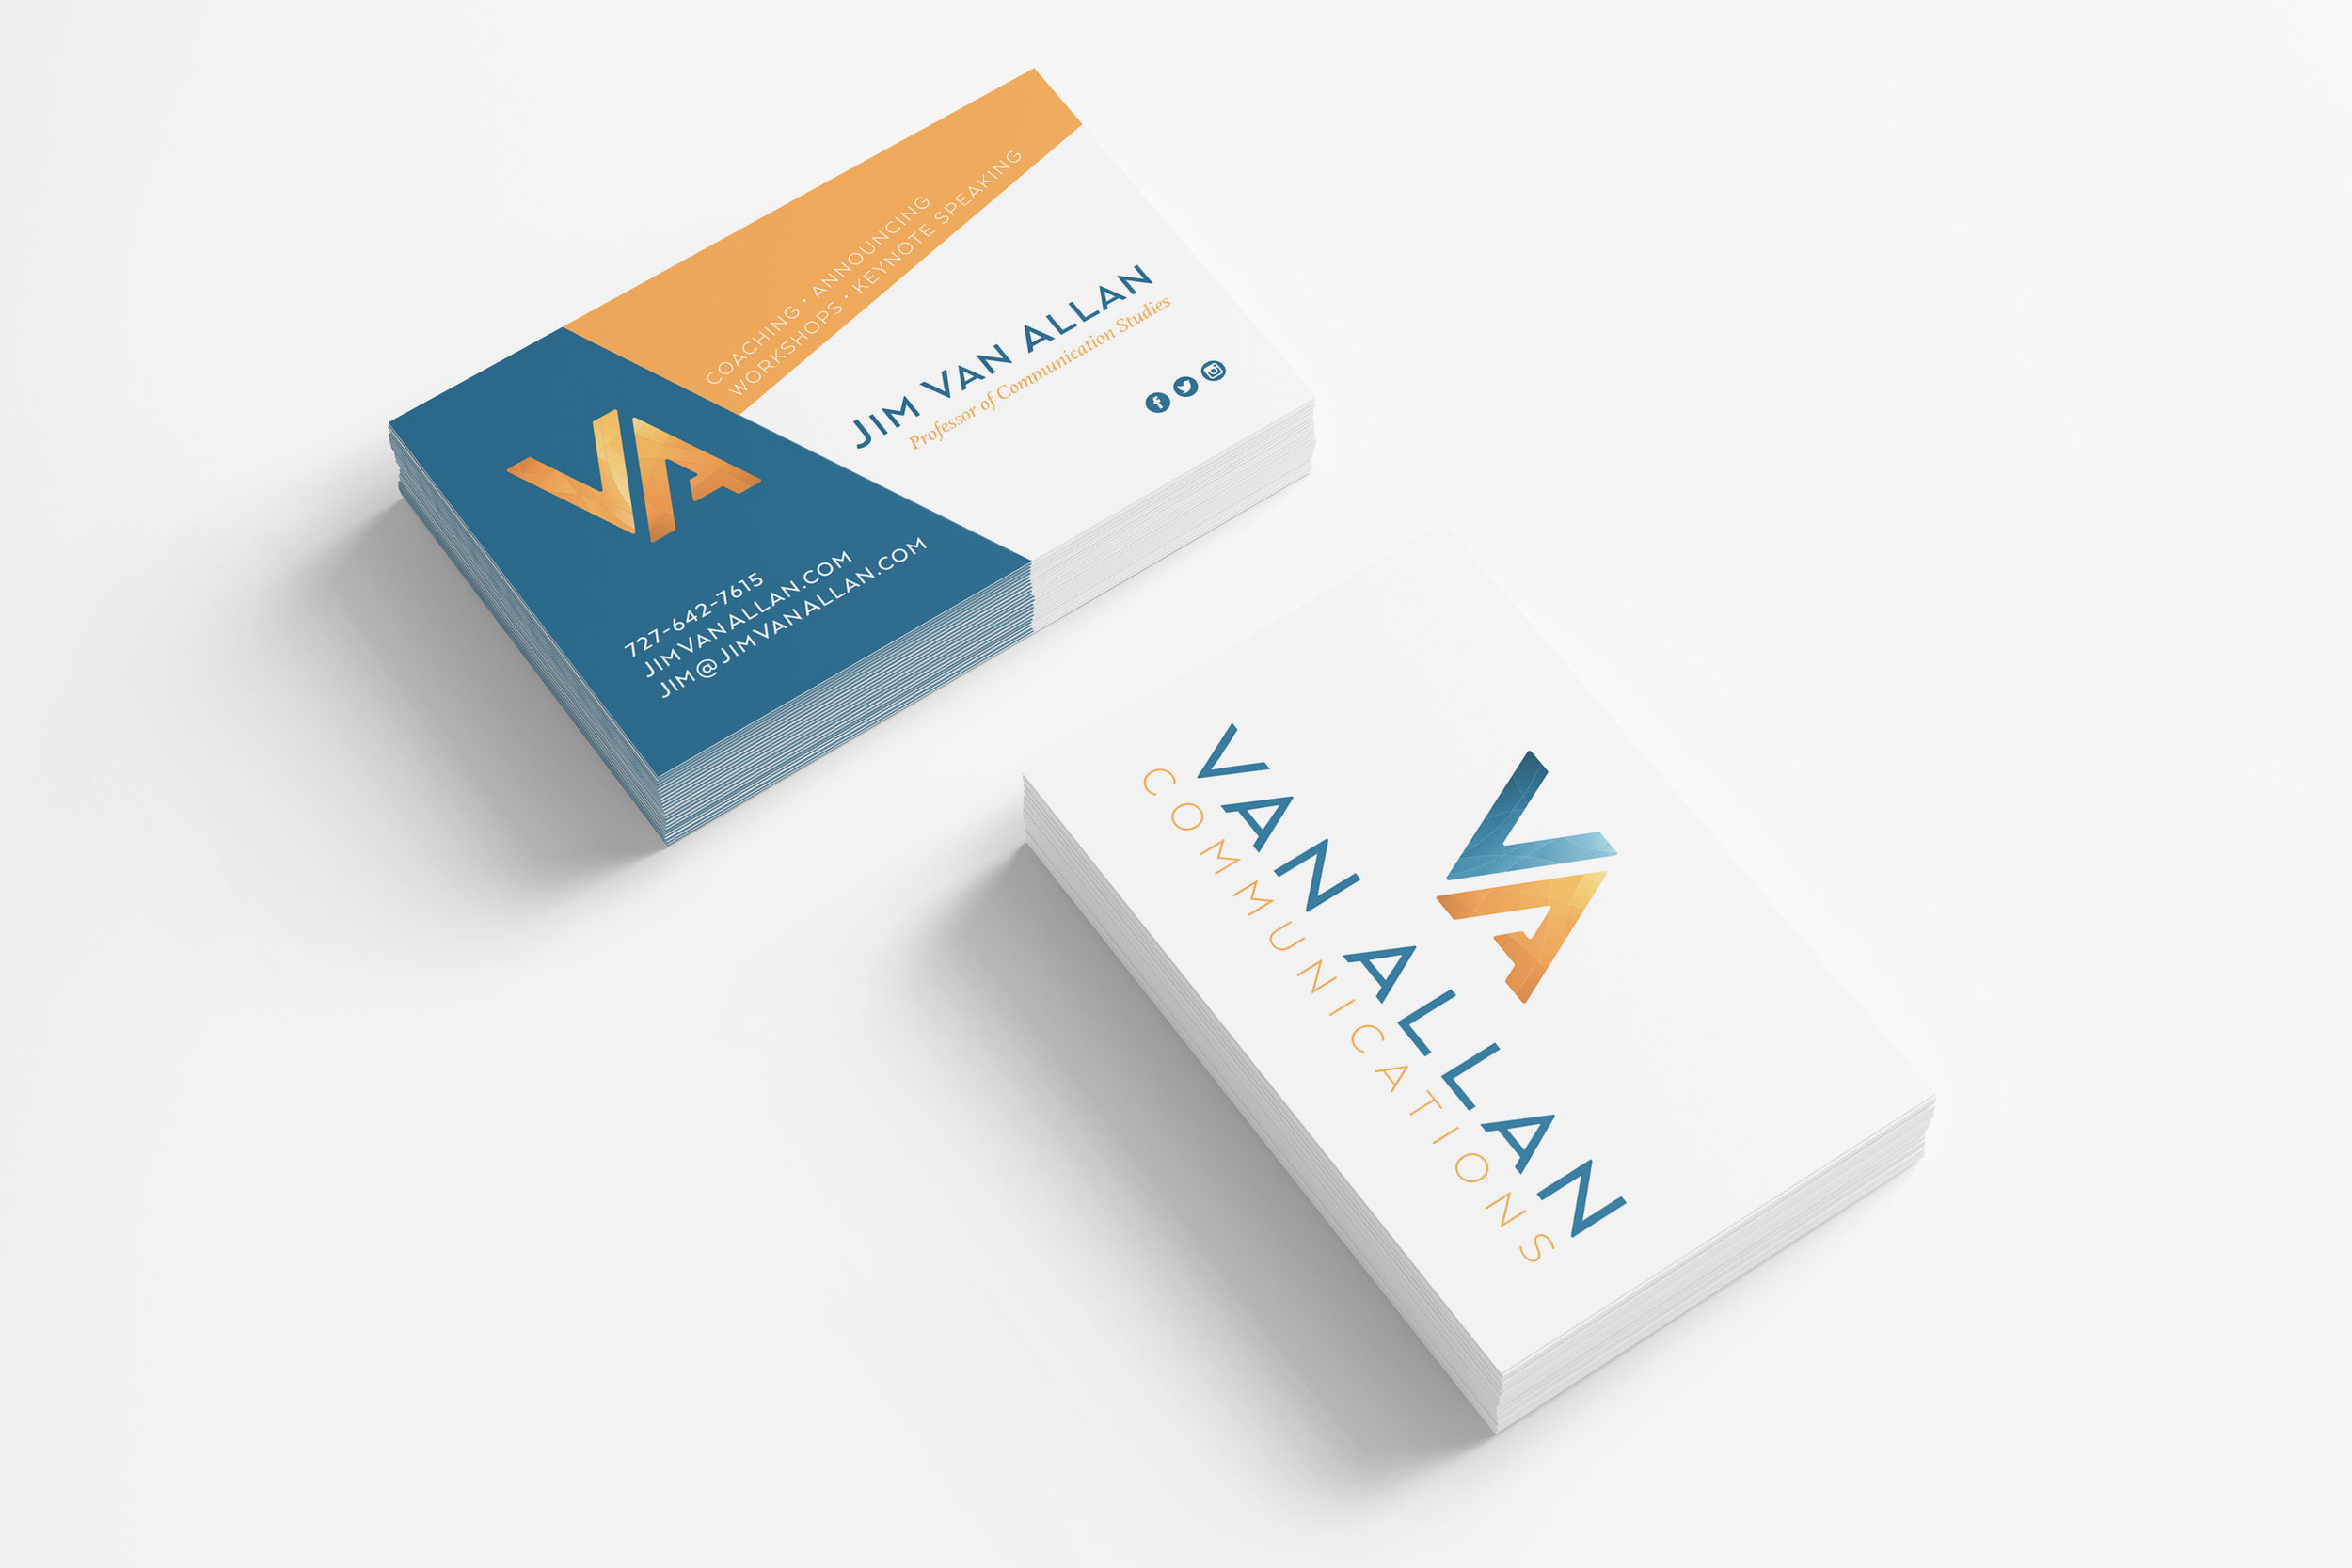 Speaker-and-Communications-business-card-design-branding.jpg